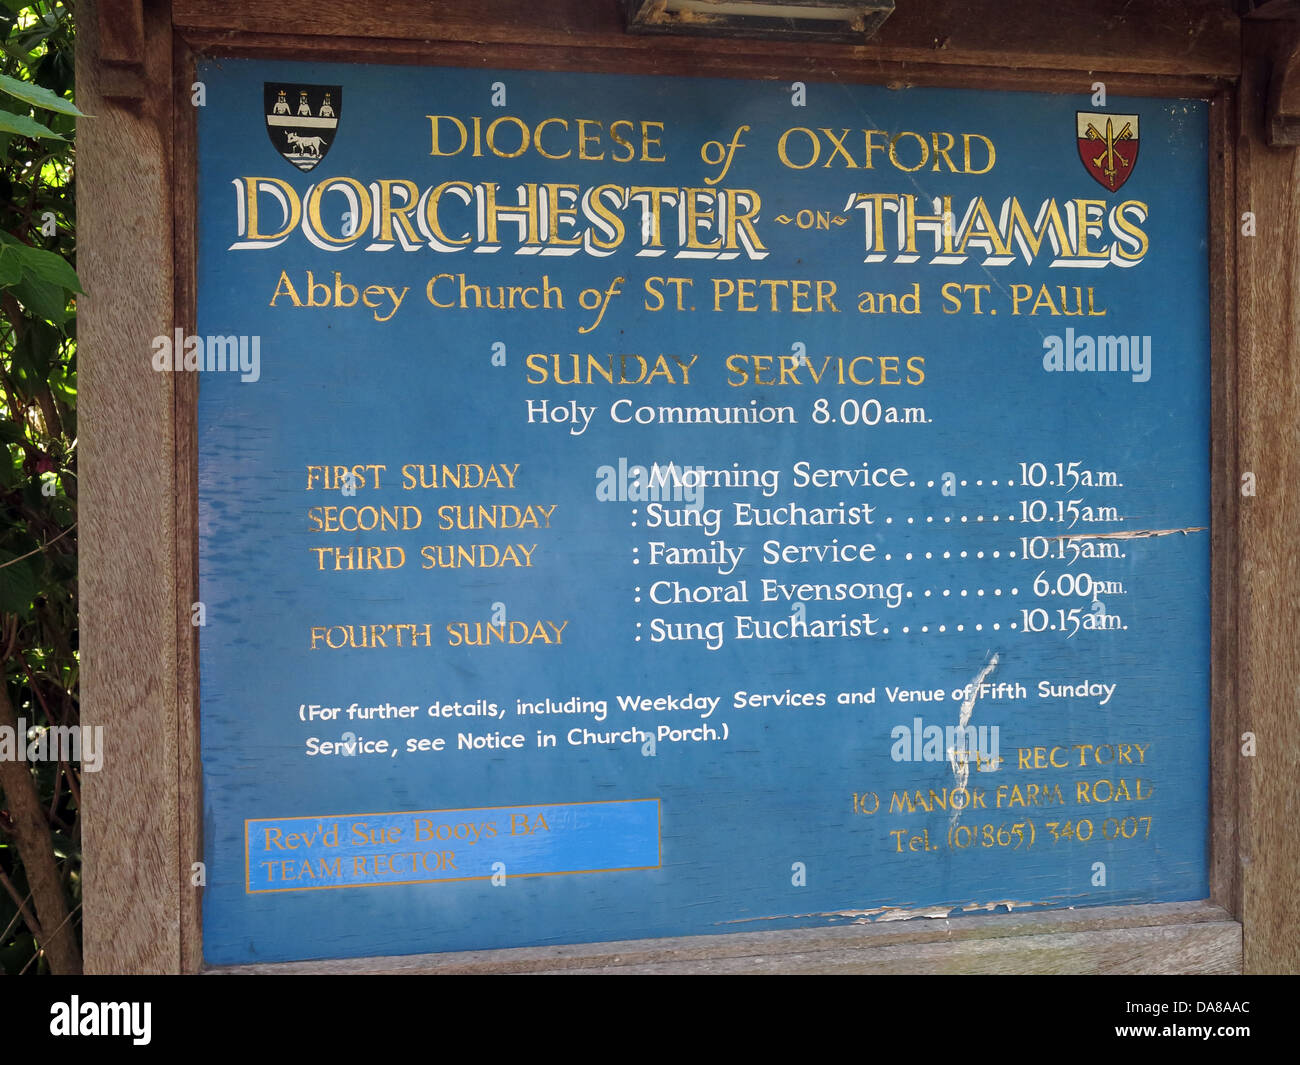 Beautiful,Dorchester,On,Thames,building,interior,of,St,Peter,&,St,Paul,HDR,oxen,oxford,oxfordshire,ancient,monument,front,sunday,services,sign,blue,first,second,third,evensong,choral,times,timings,church,Gotonysmith monuments NT,Buy Pictures of,Buy Images Of